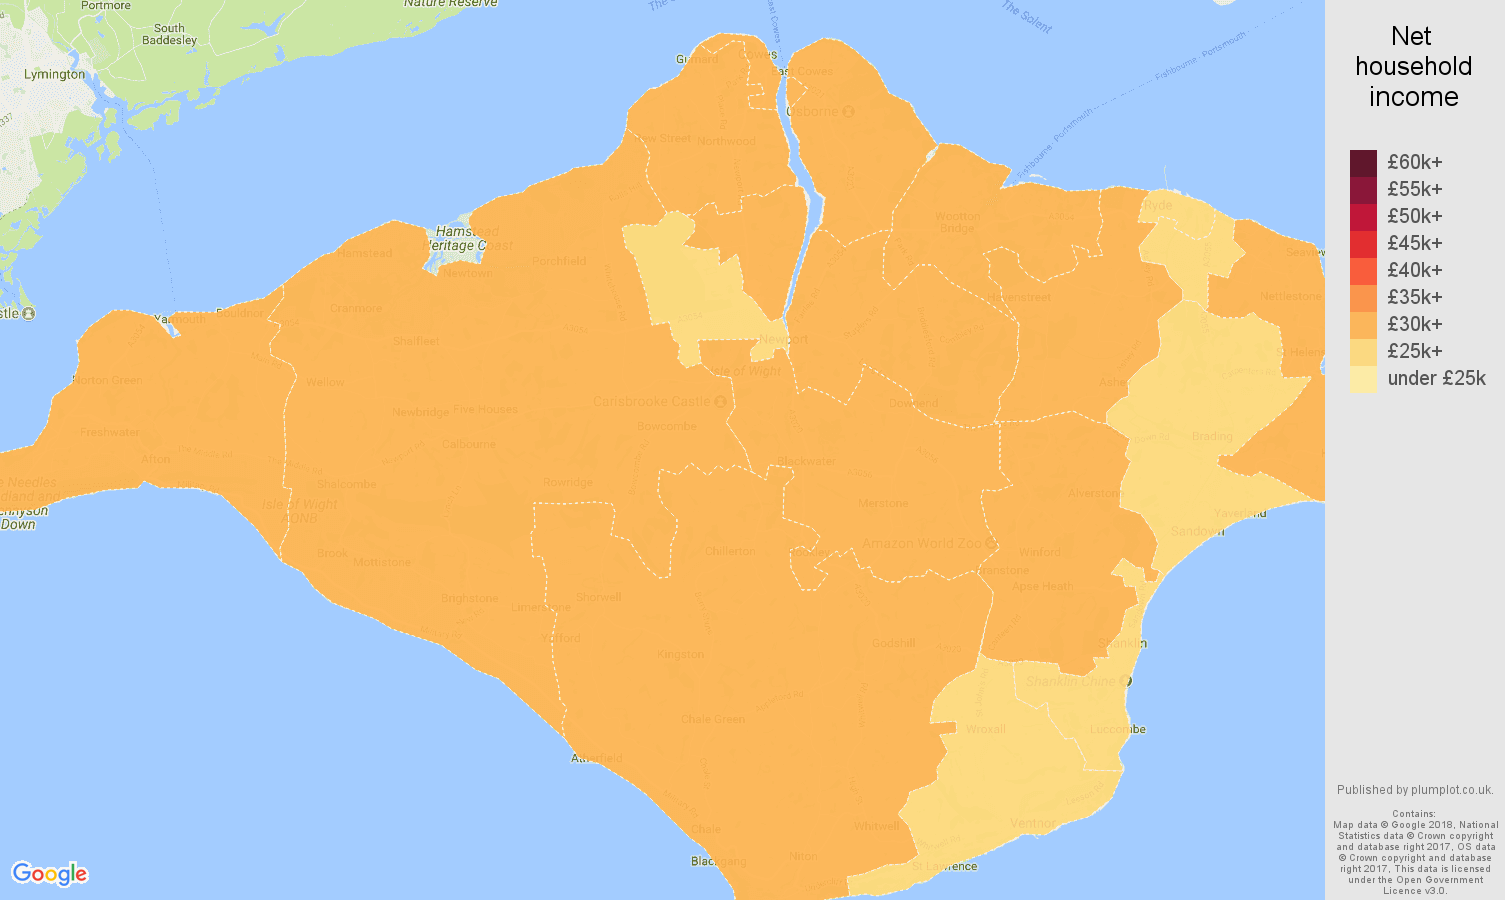 Isle of Wight net household income map